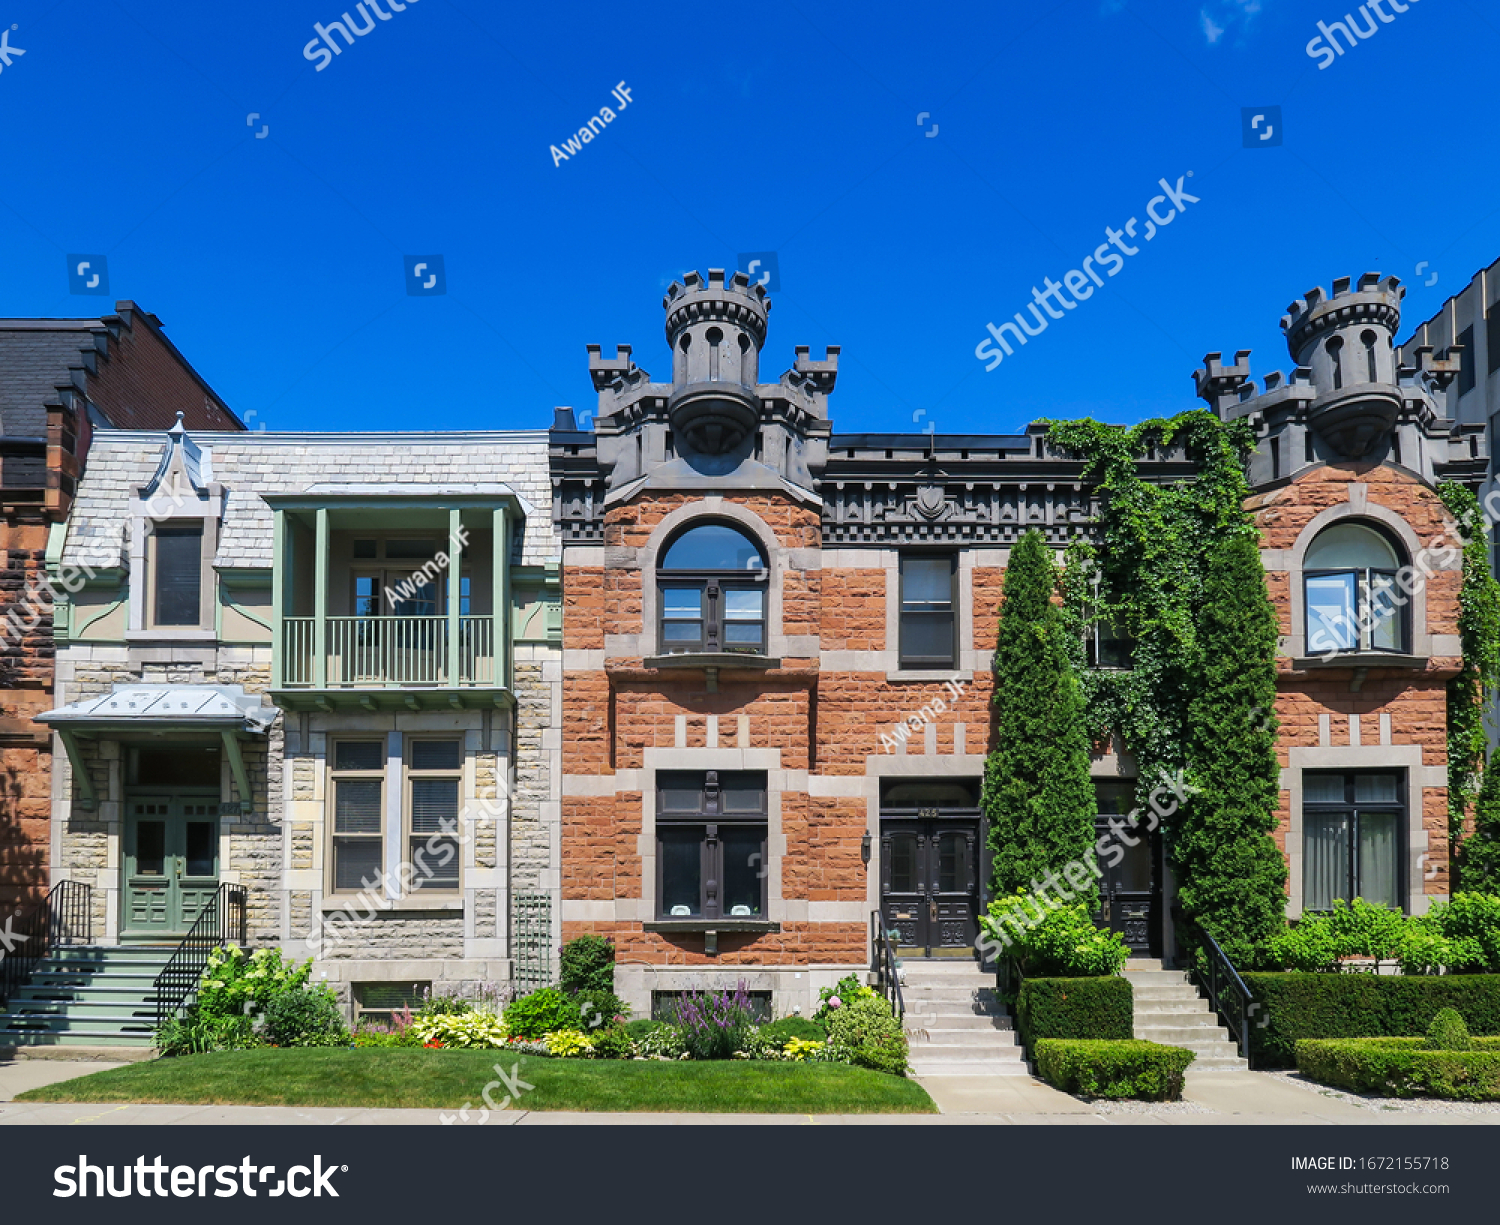 stock-photo-montreal-canada-july-beautif